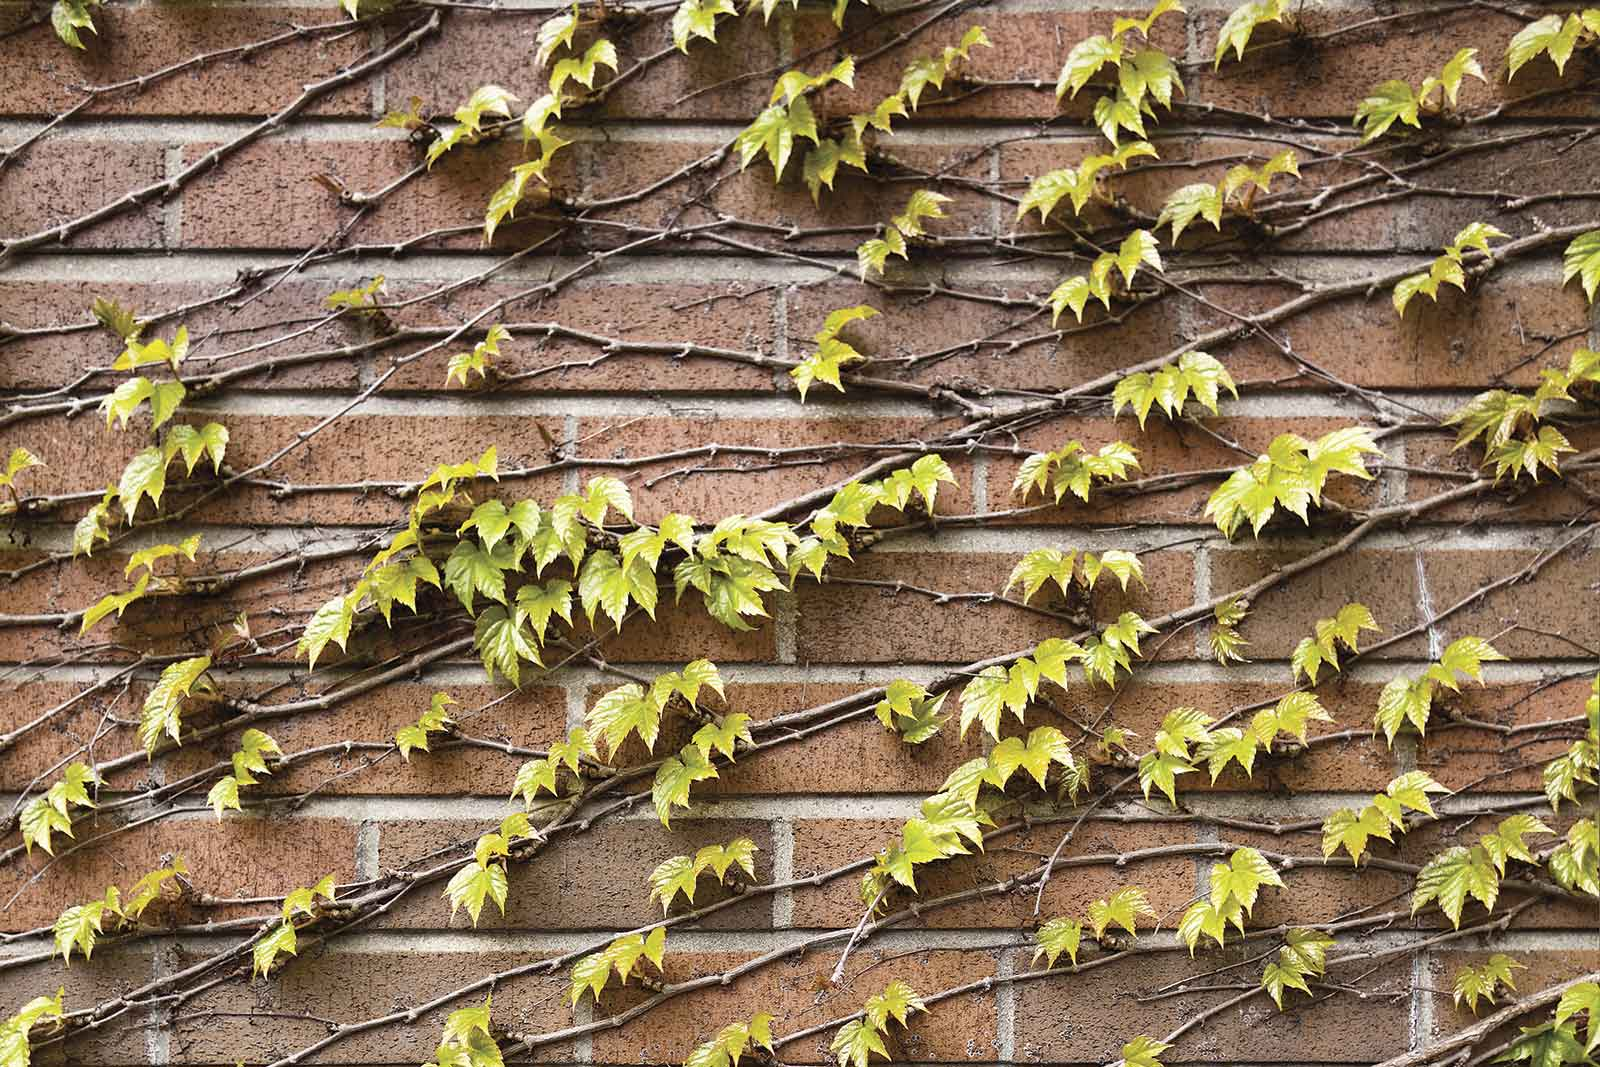 Red brick wall on the exterior of New College, covered in vines and leaves.